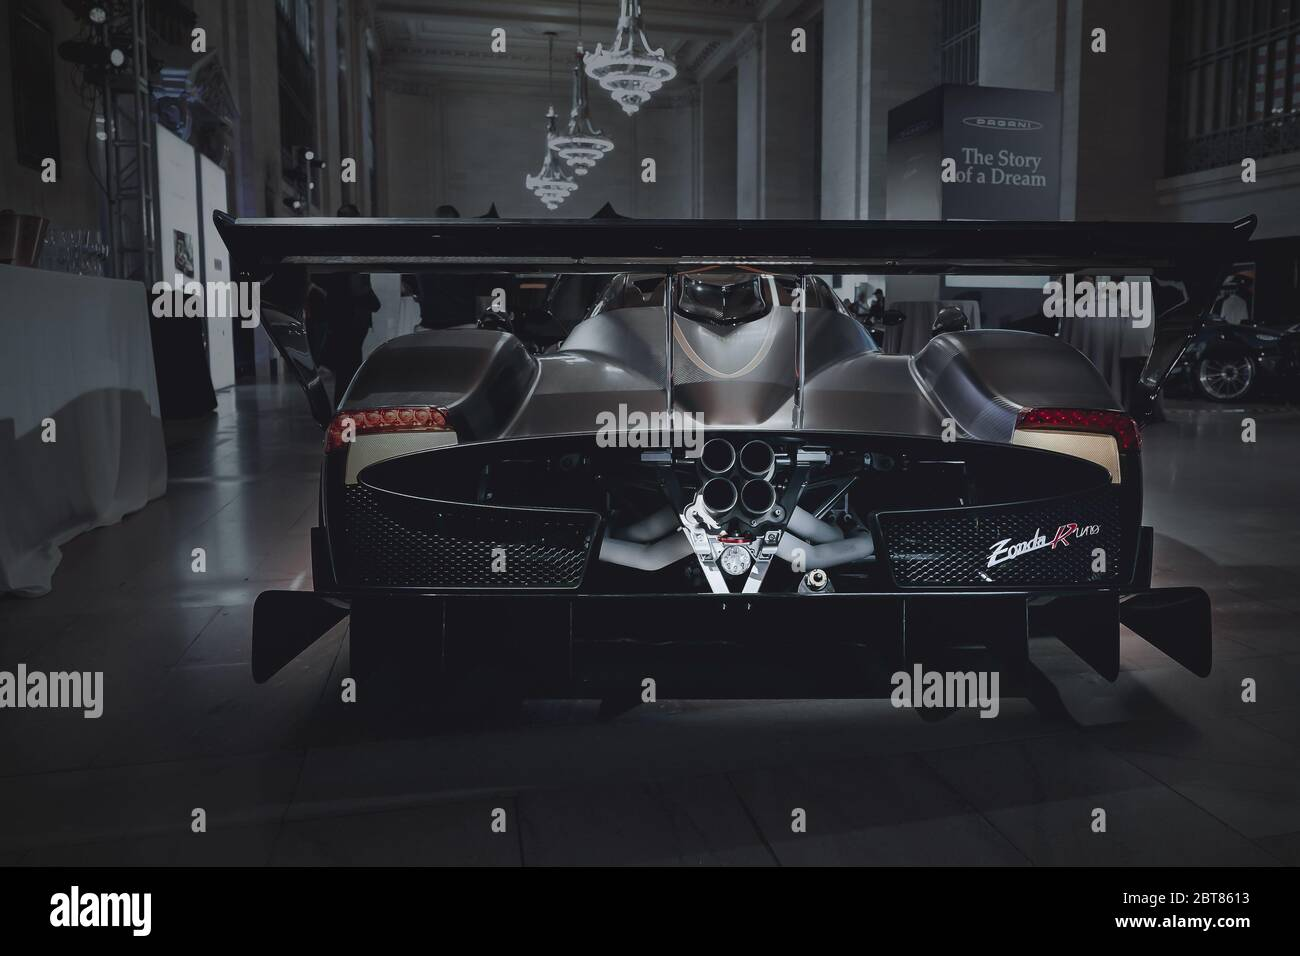 pagani high resolution stock photography and images alamy https www alamy com 11419 new yorkny pagani takes over grand central terminal with five zondas and a huayra pagani the story of a dream highlights the history image359139455 html